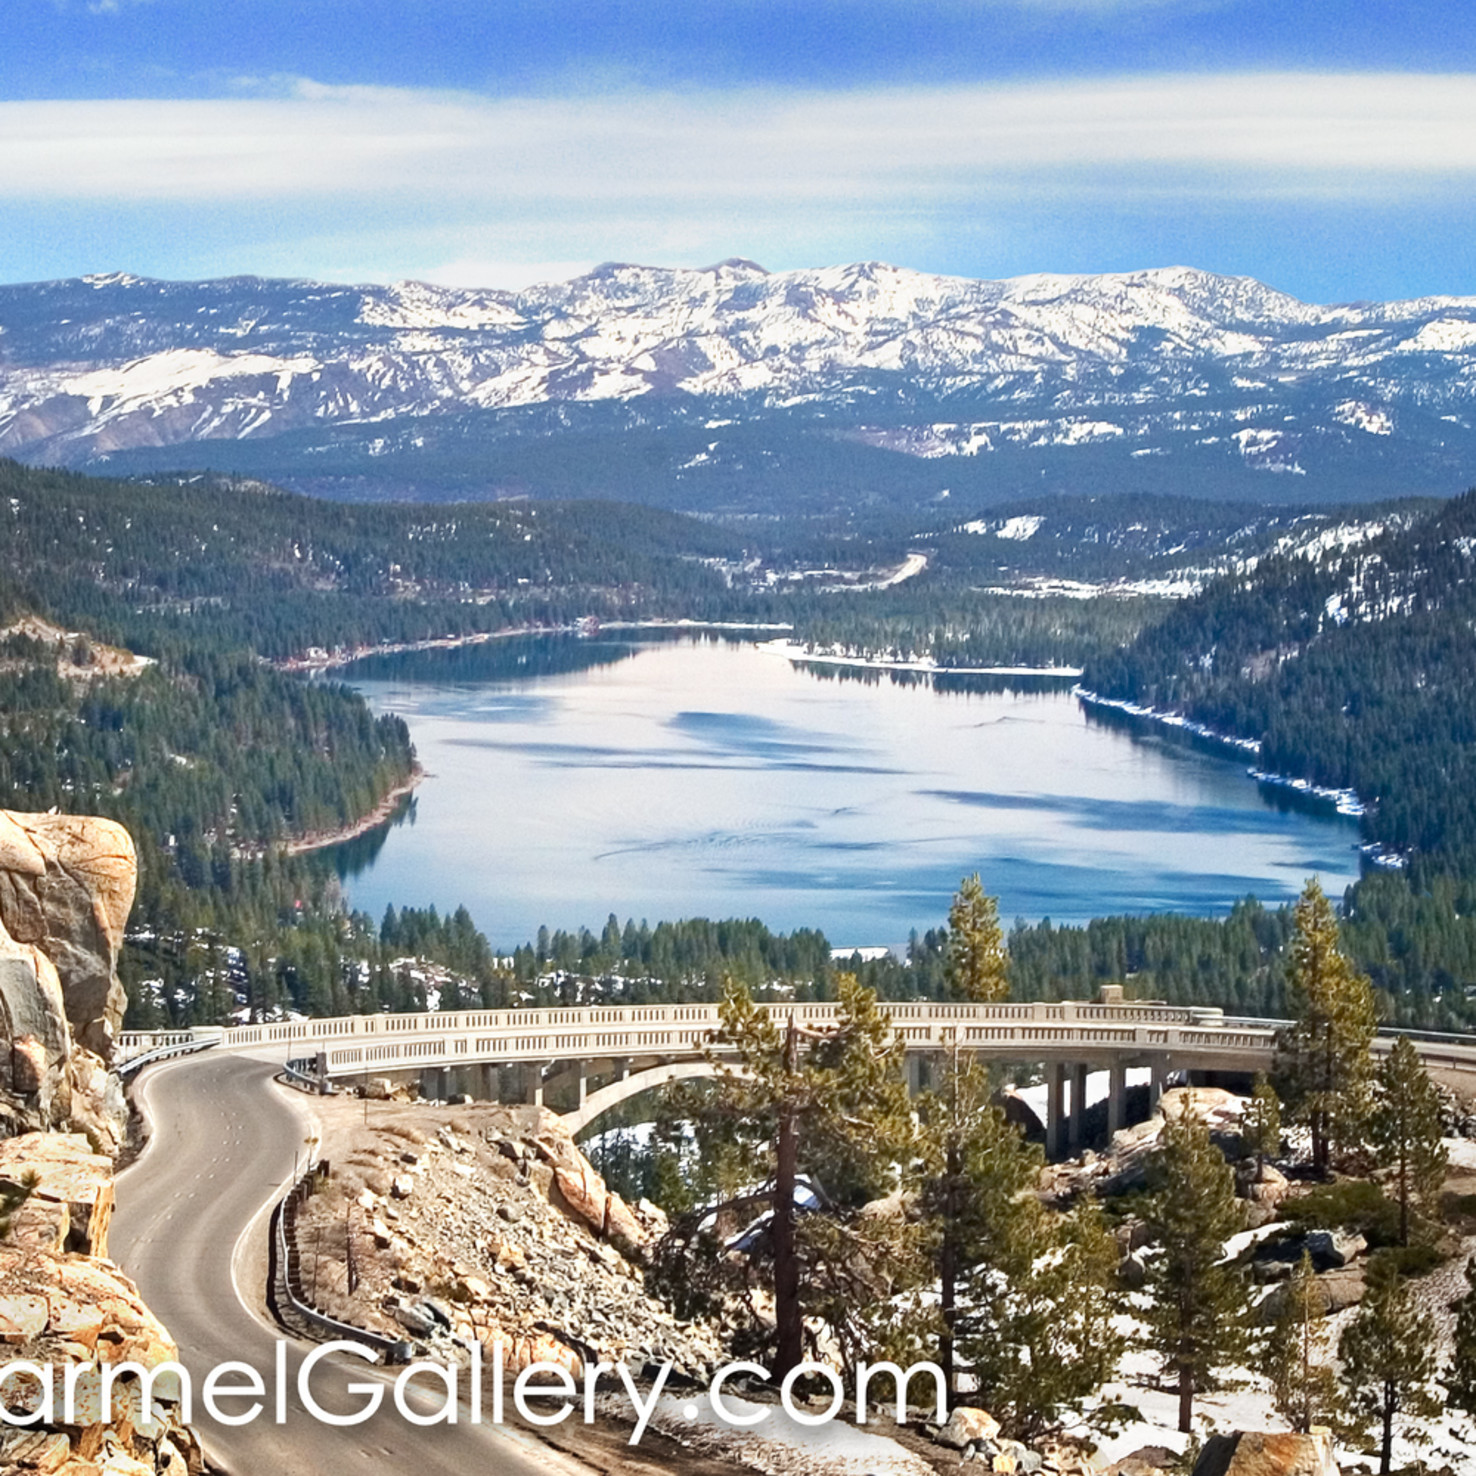 Old 40 and donner lake loofkq